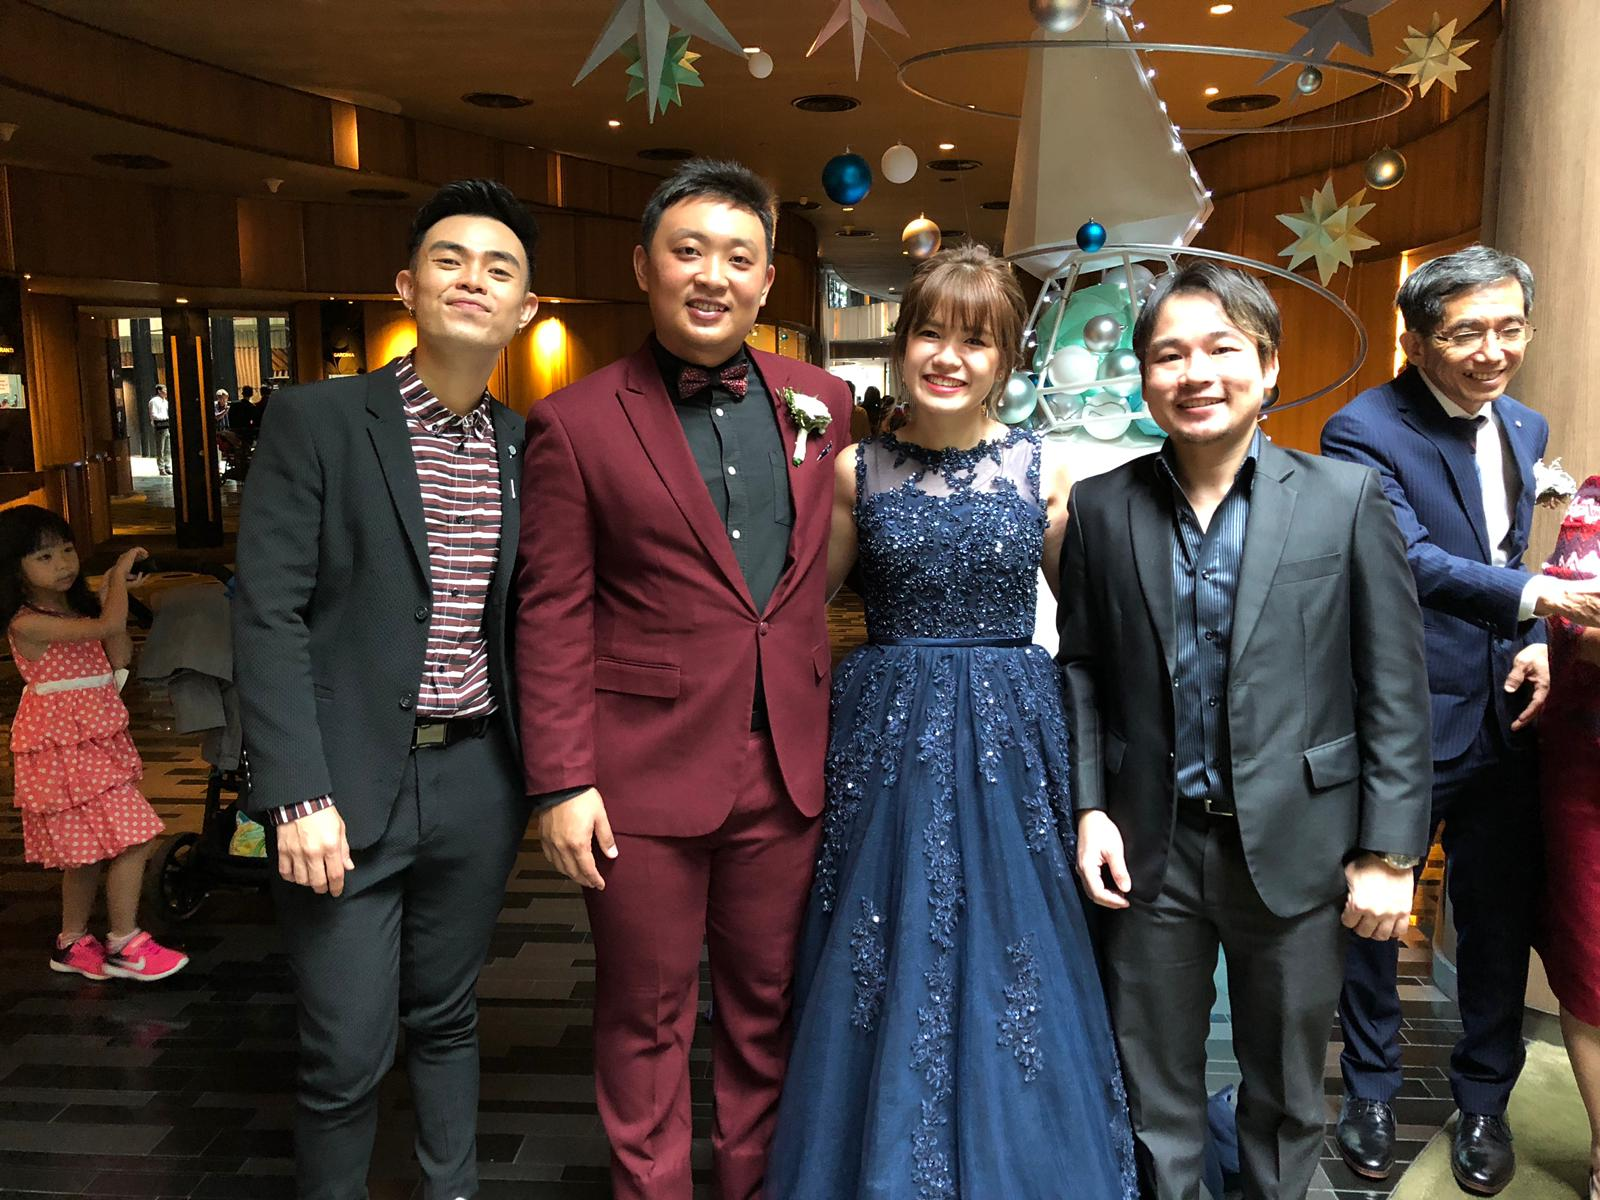 Gim Hock & Hui Chin Crowne Plaza Wedding Live Band Emcee MC